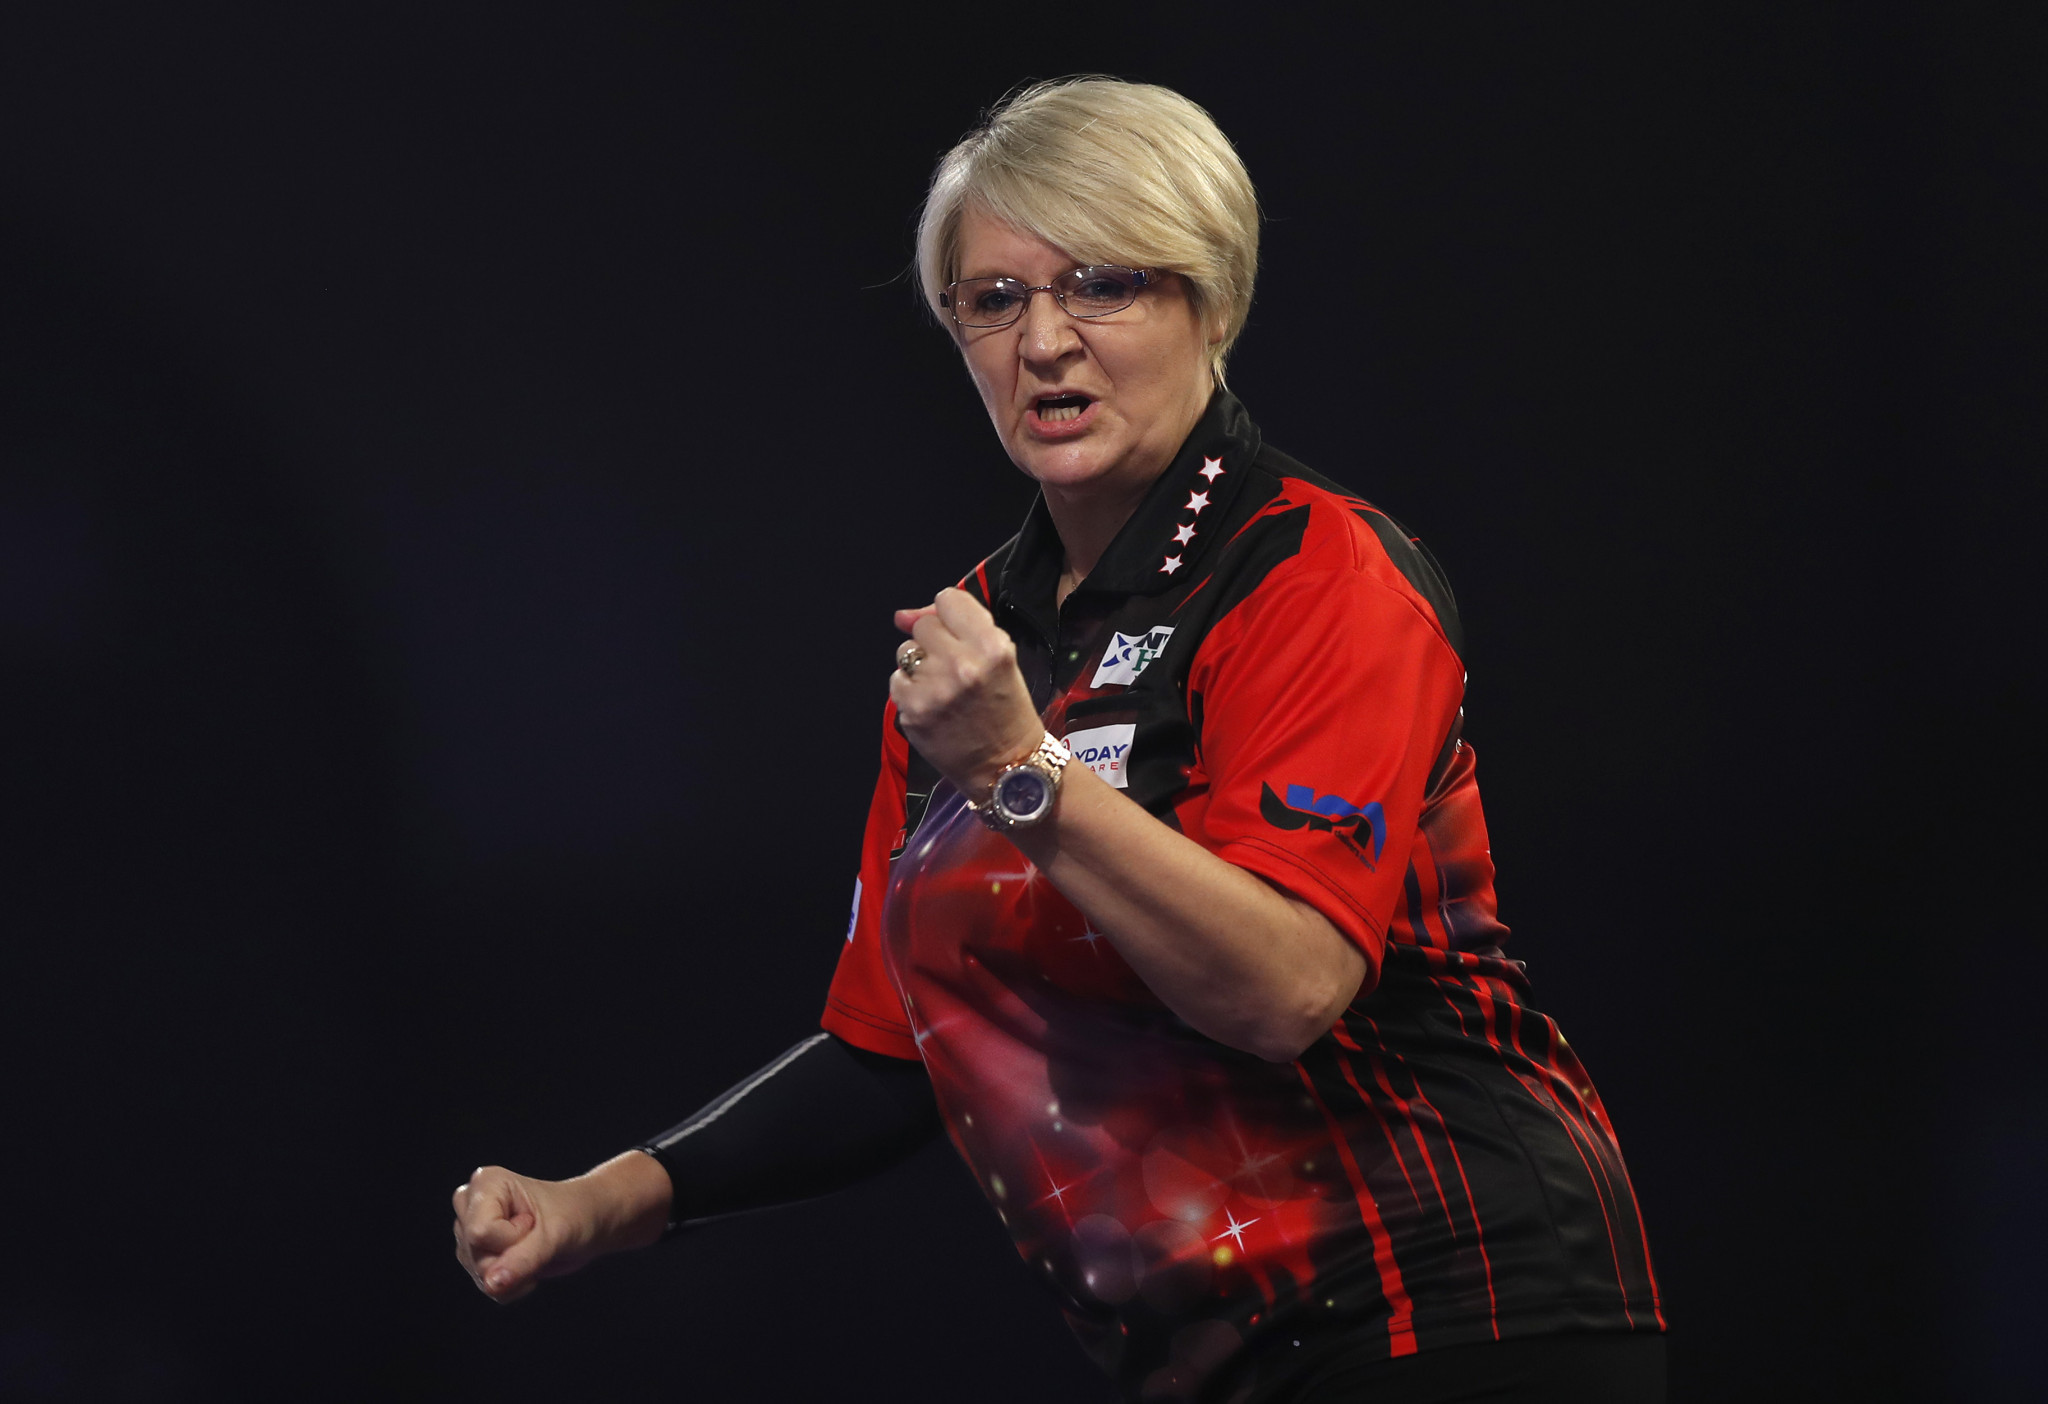 Ashton loses out in final set in quest to become second female to win match at PDC World Darts Championship